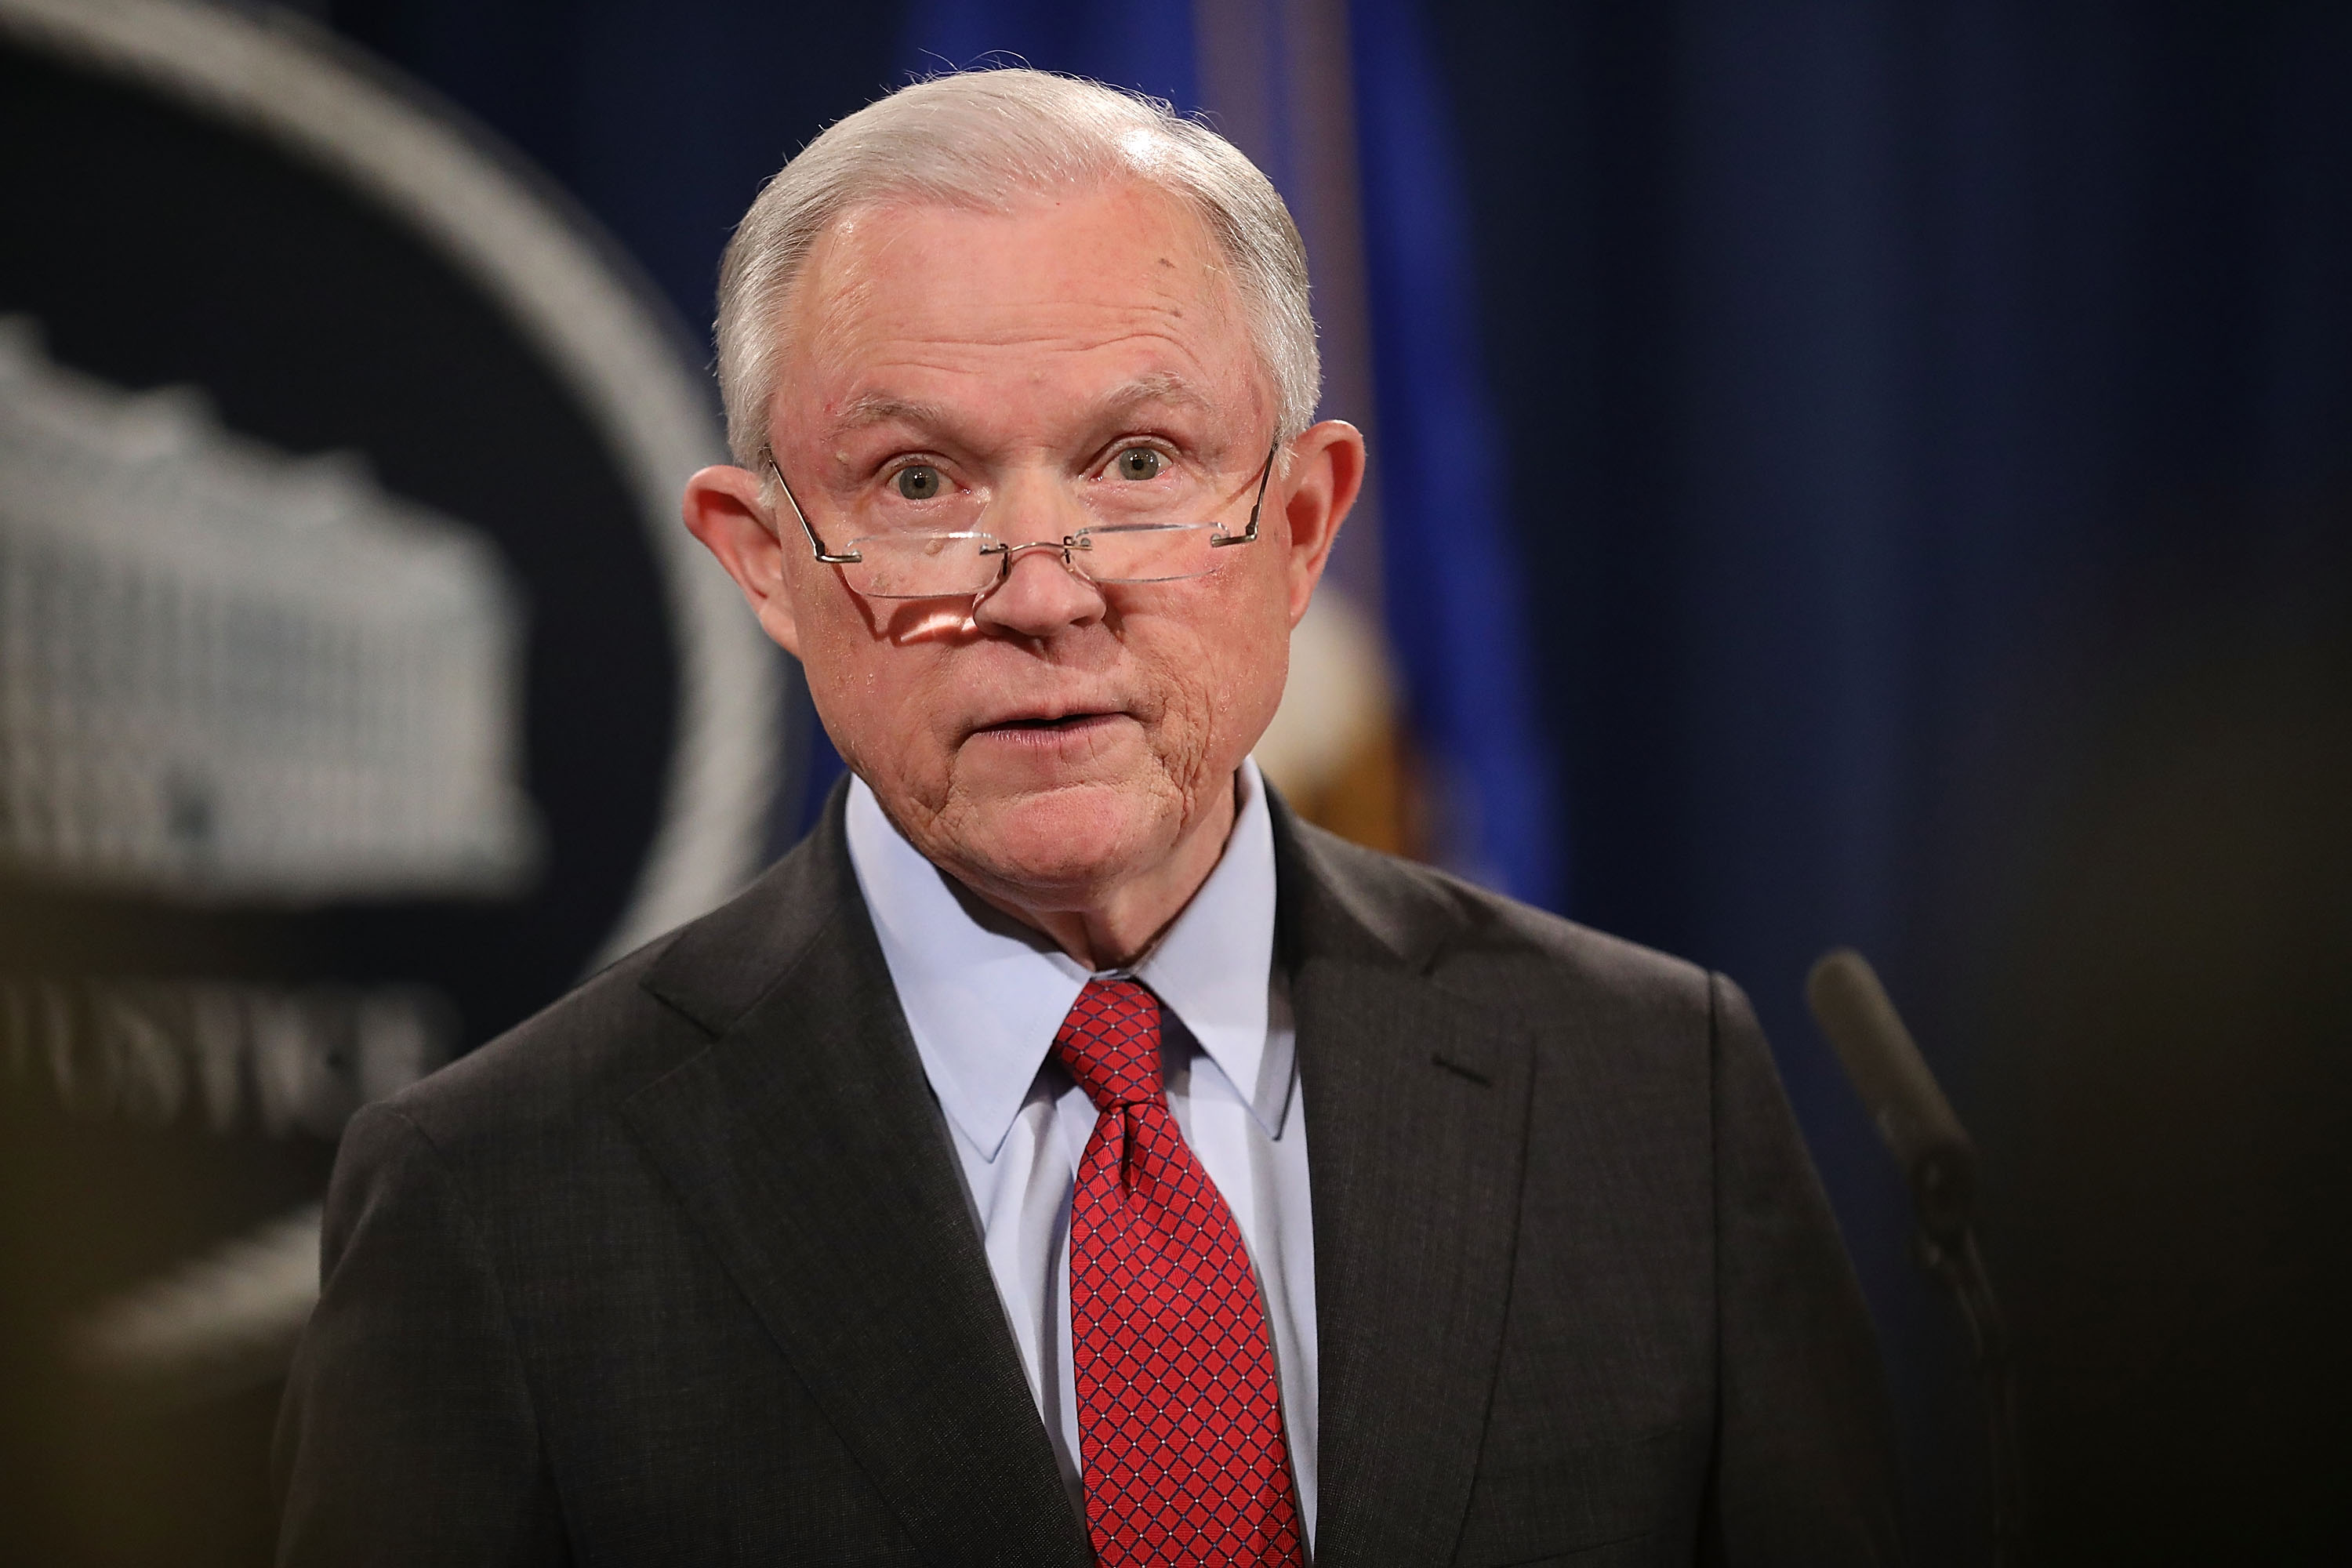 WASHINGTON, DC - DECEMBER 15: U.S. Attorney General Jeff Sessions holds a news conference at the Department of Justice on December 15, 2017 in Washington, DC. Sessions called the question-and-answer session with reporters to highlight his department's fight to reduce violent crime. (Photo by Chip Somodevilla/Getty Images)